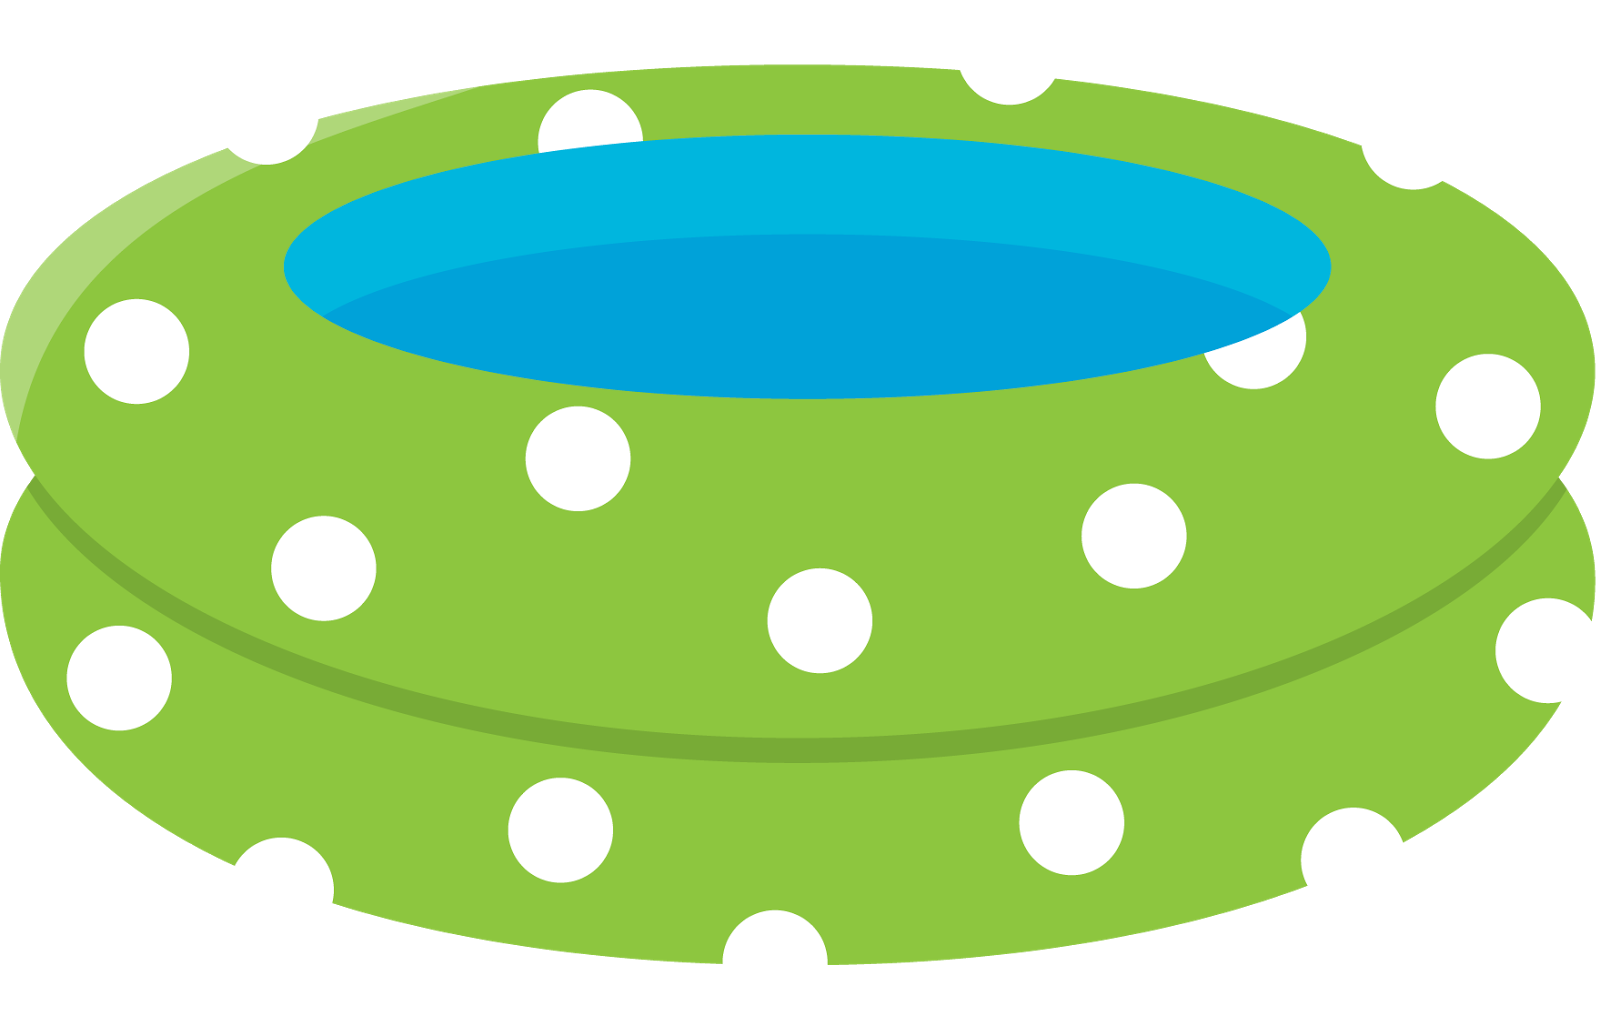 enjoying the swimming pool toys games and sports clipart #26635